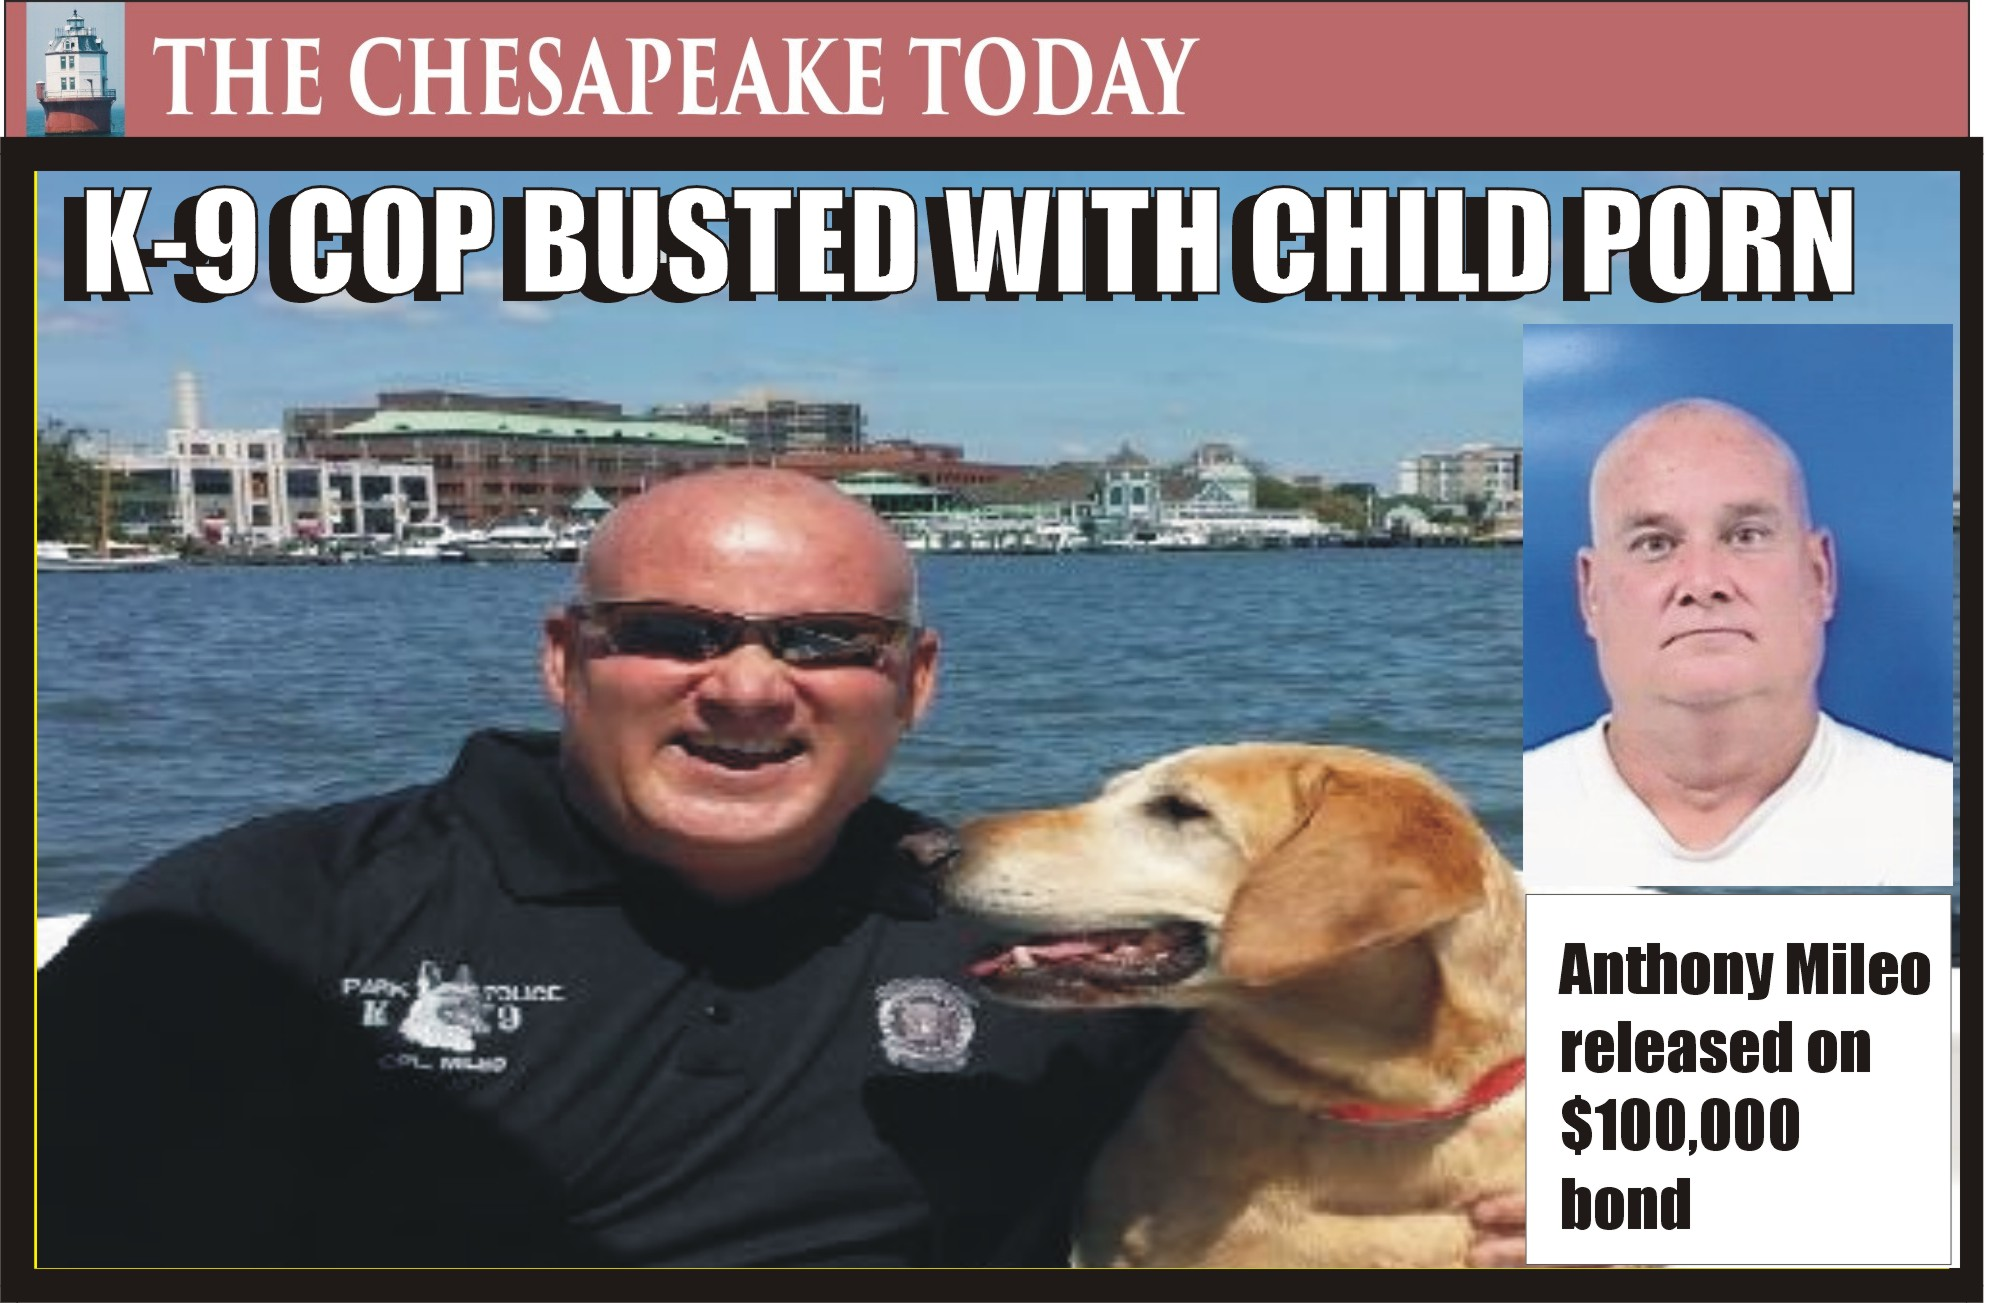 DIRTBAG ROUNDUP: Maryland Cop Anthony M. Mileo charged with possession and distribution of child porn